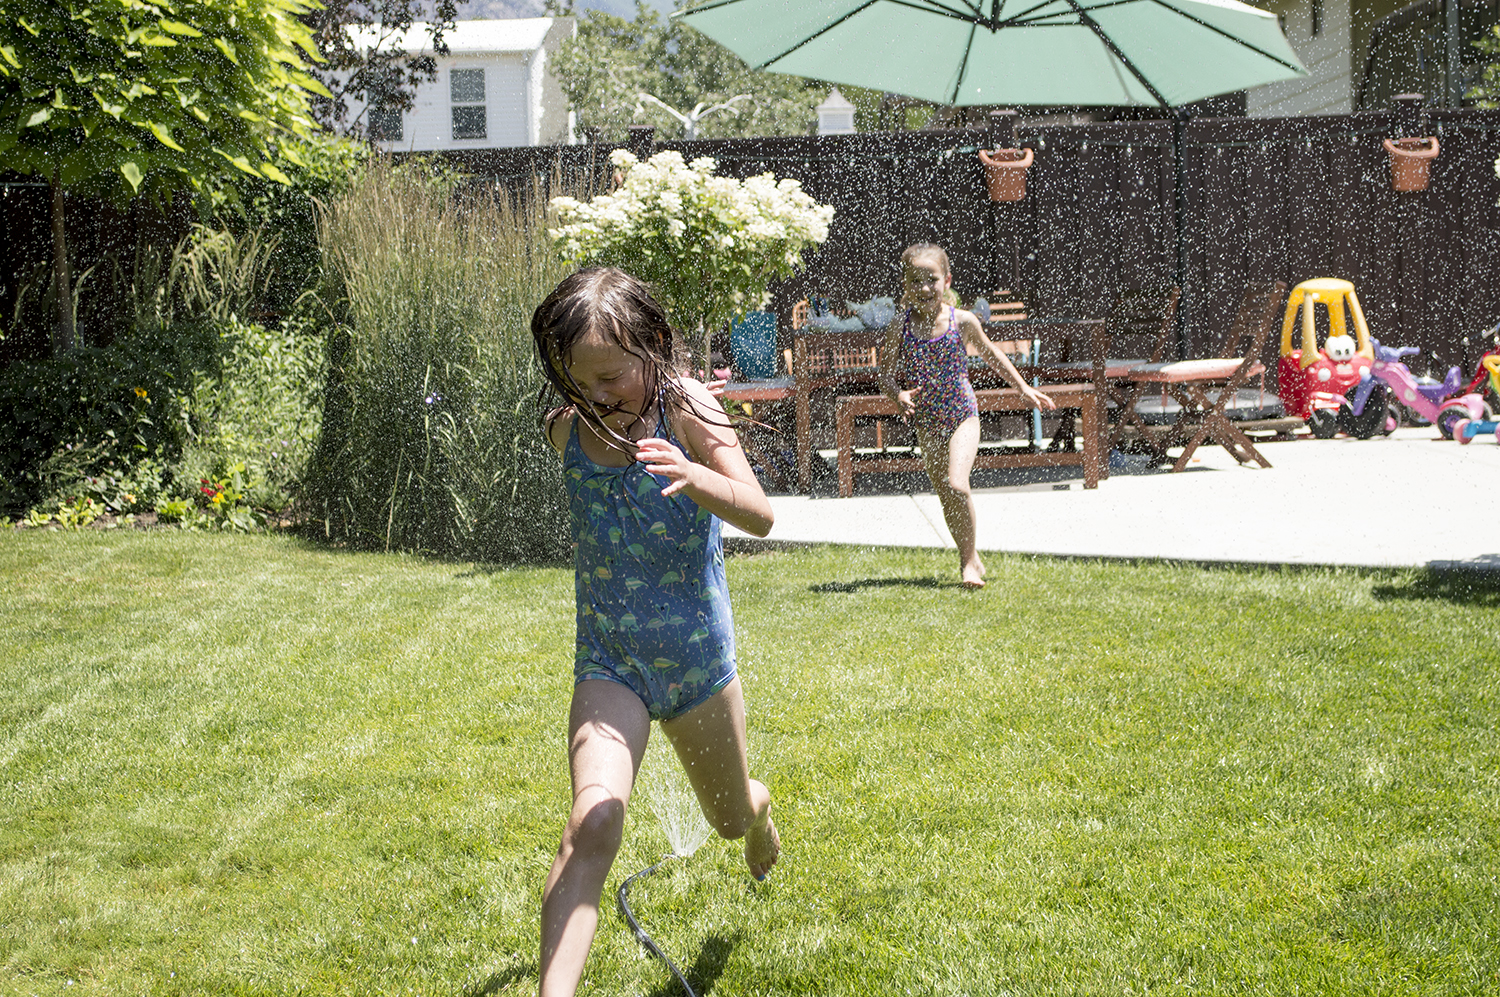 Abbey and Maliya spent the afternoon running in the sprinklers.